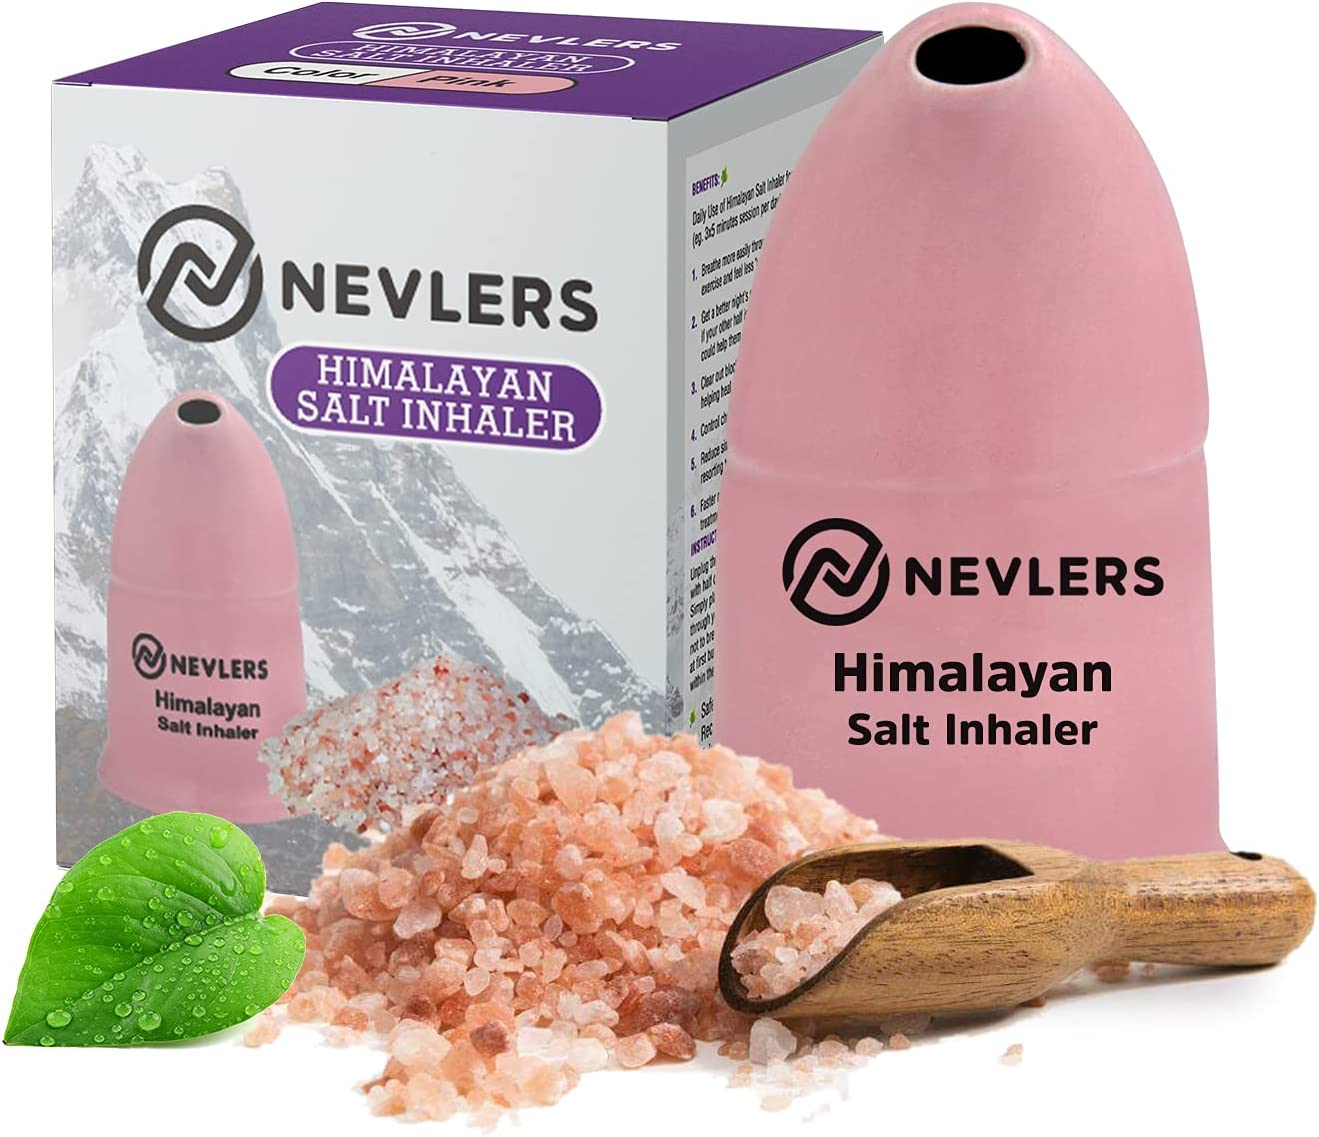 Nevlers All Natural Ceramic Himalayan Salt Inhaler with All Natural Himalayan Pink Crystal Salt - Great for Allergy and Asthma Relief - Handheld and Portable - Pink : Everything Else